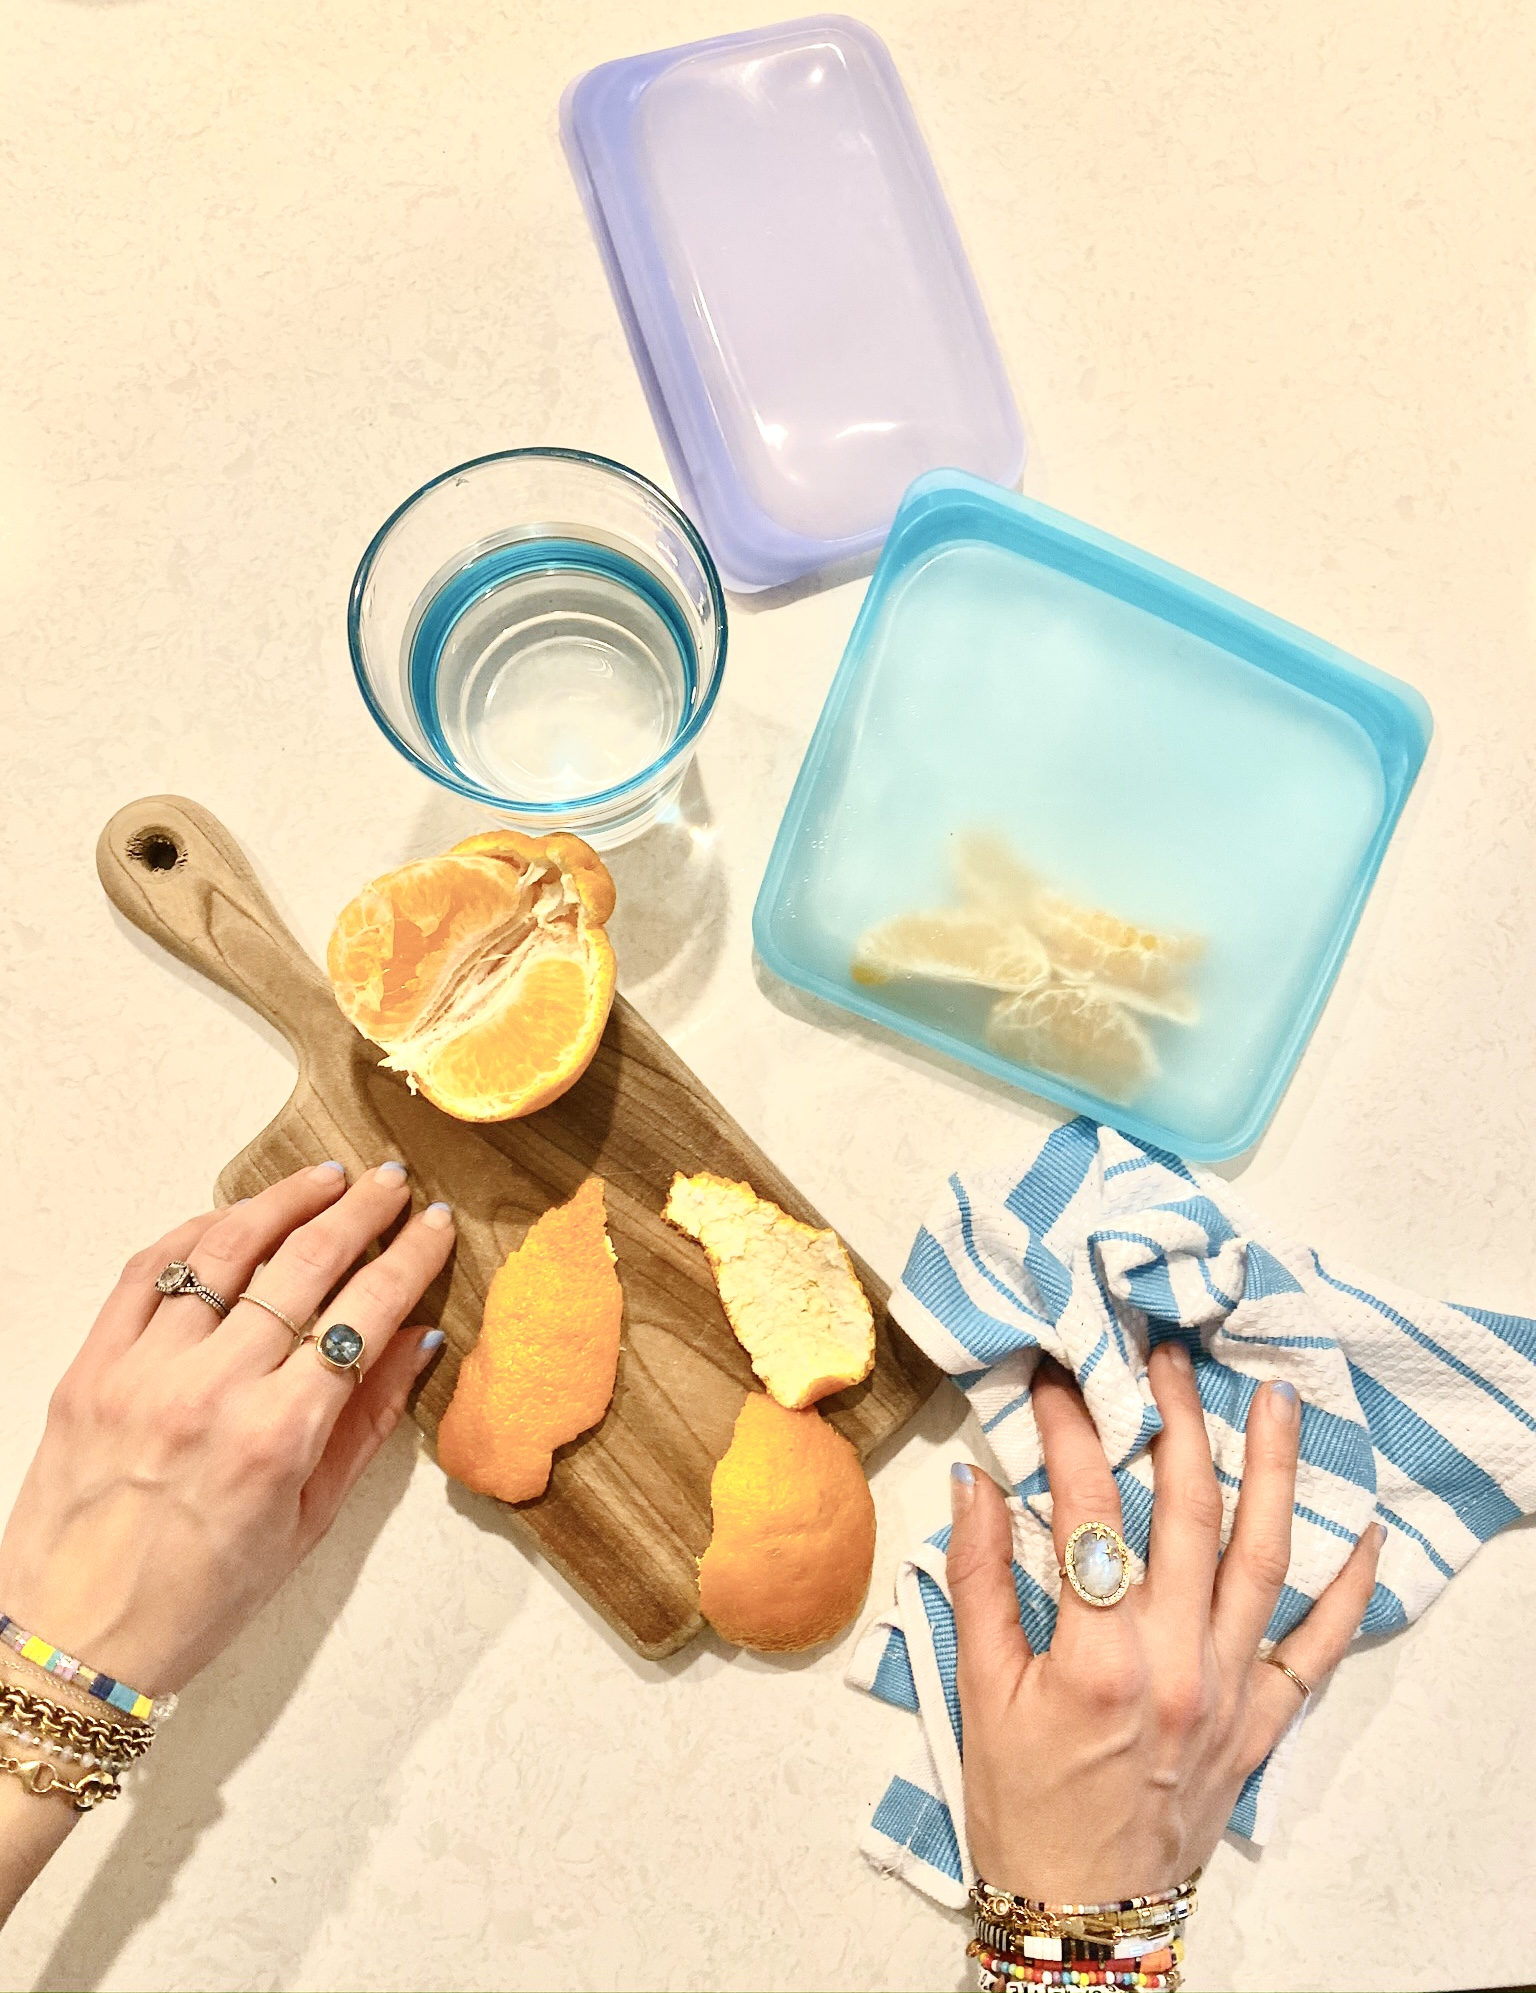 Founder in the Kitchen: Plastic Product Swaps